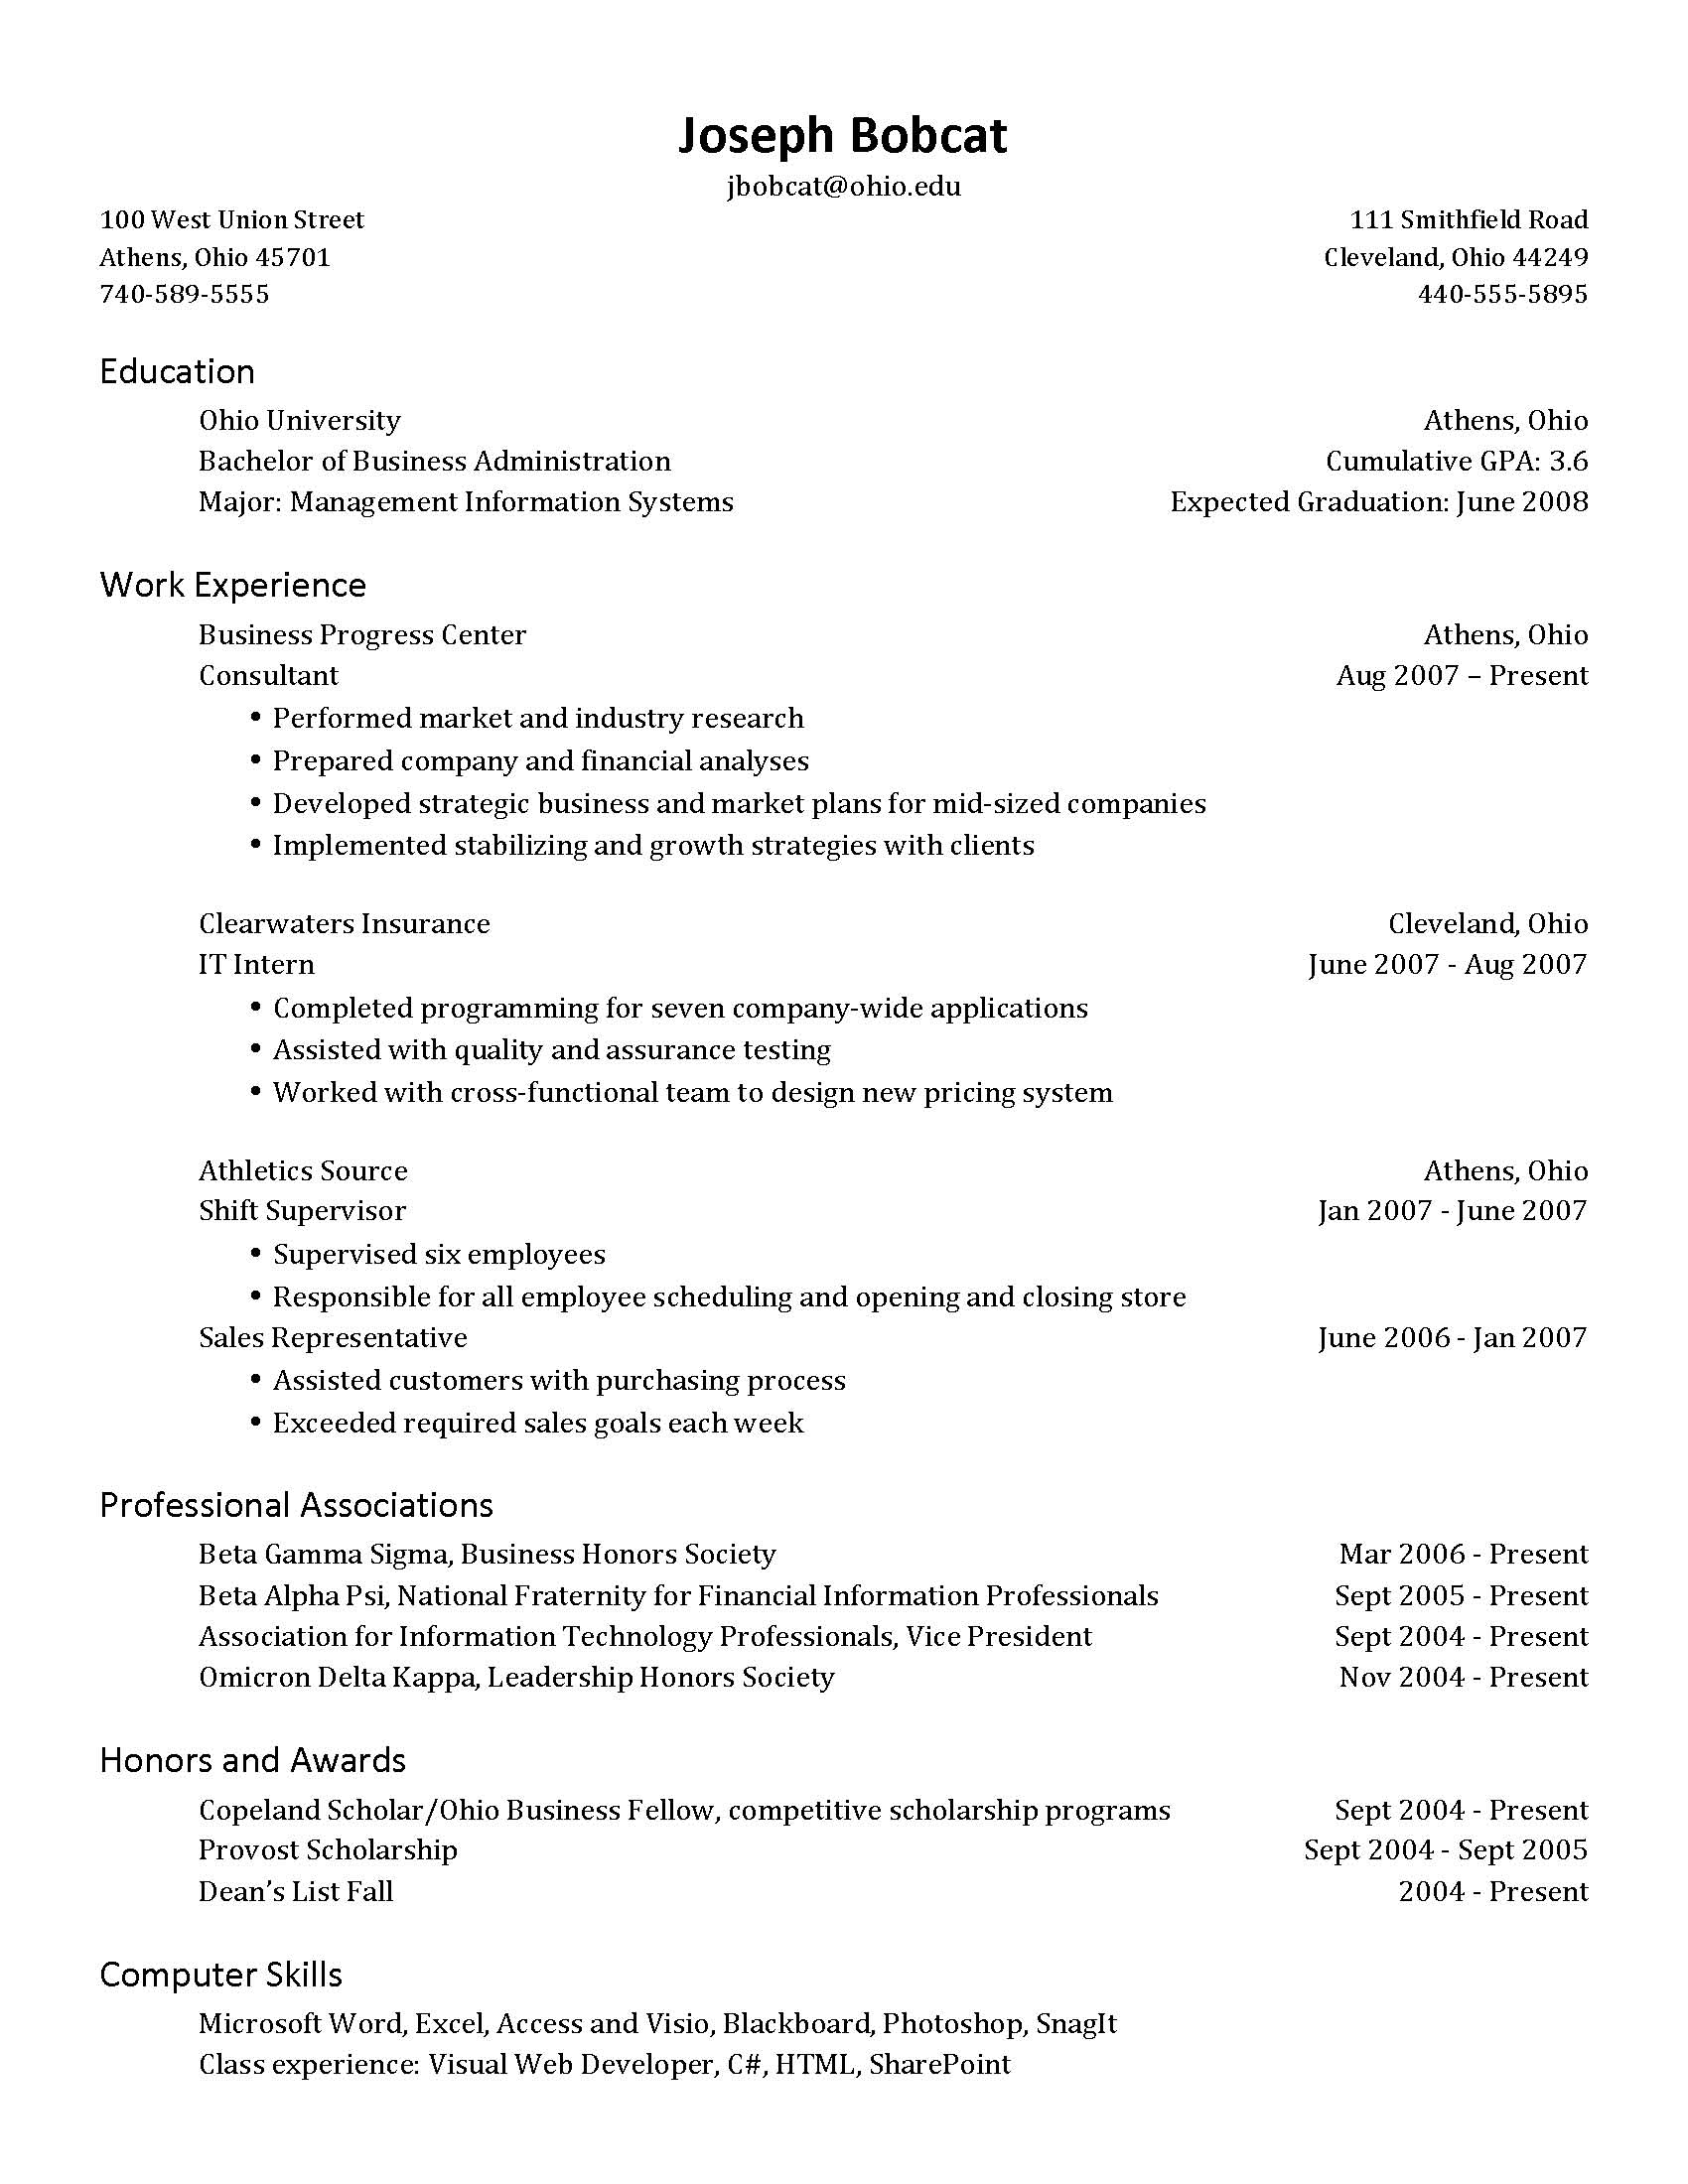 resume Resume Availability Section cover letters resumes interviews